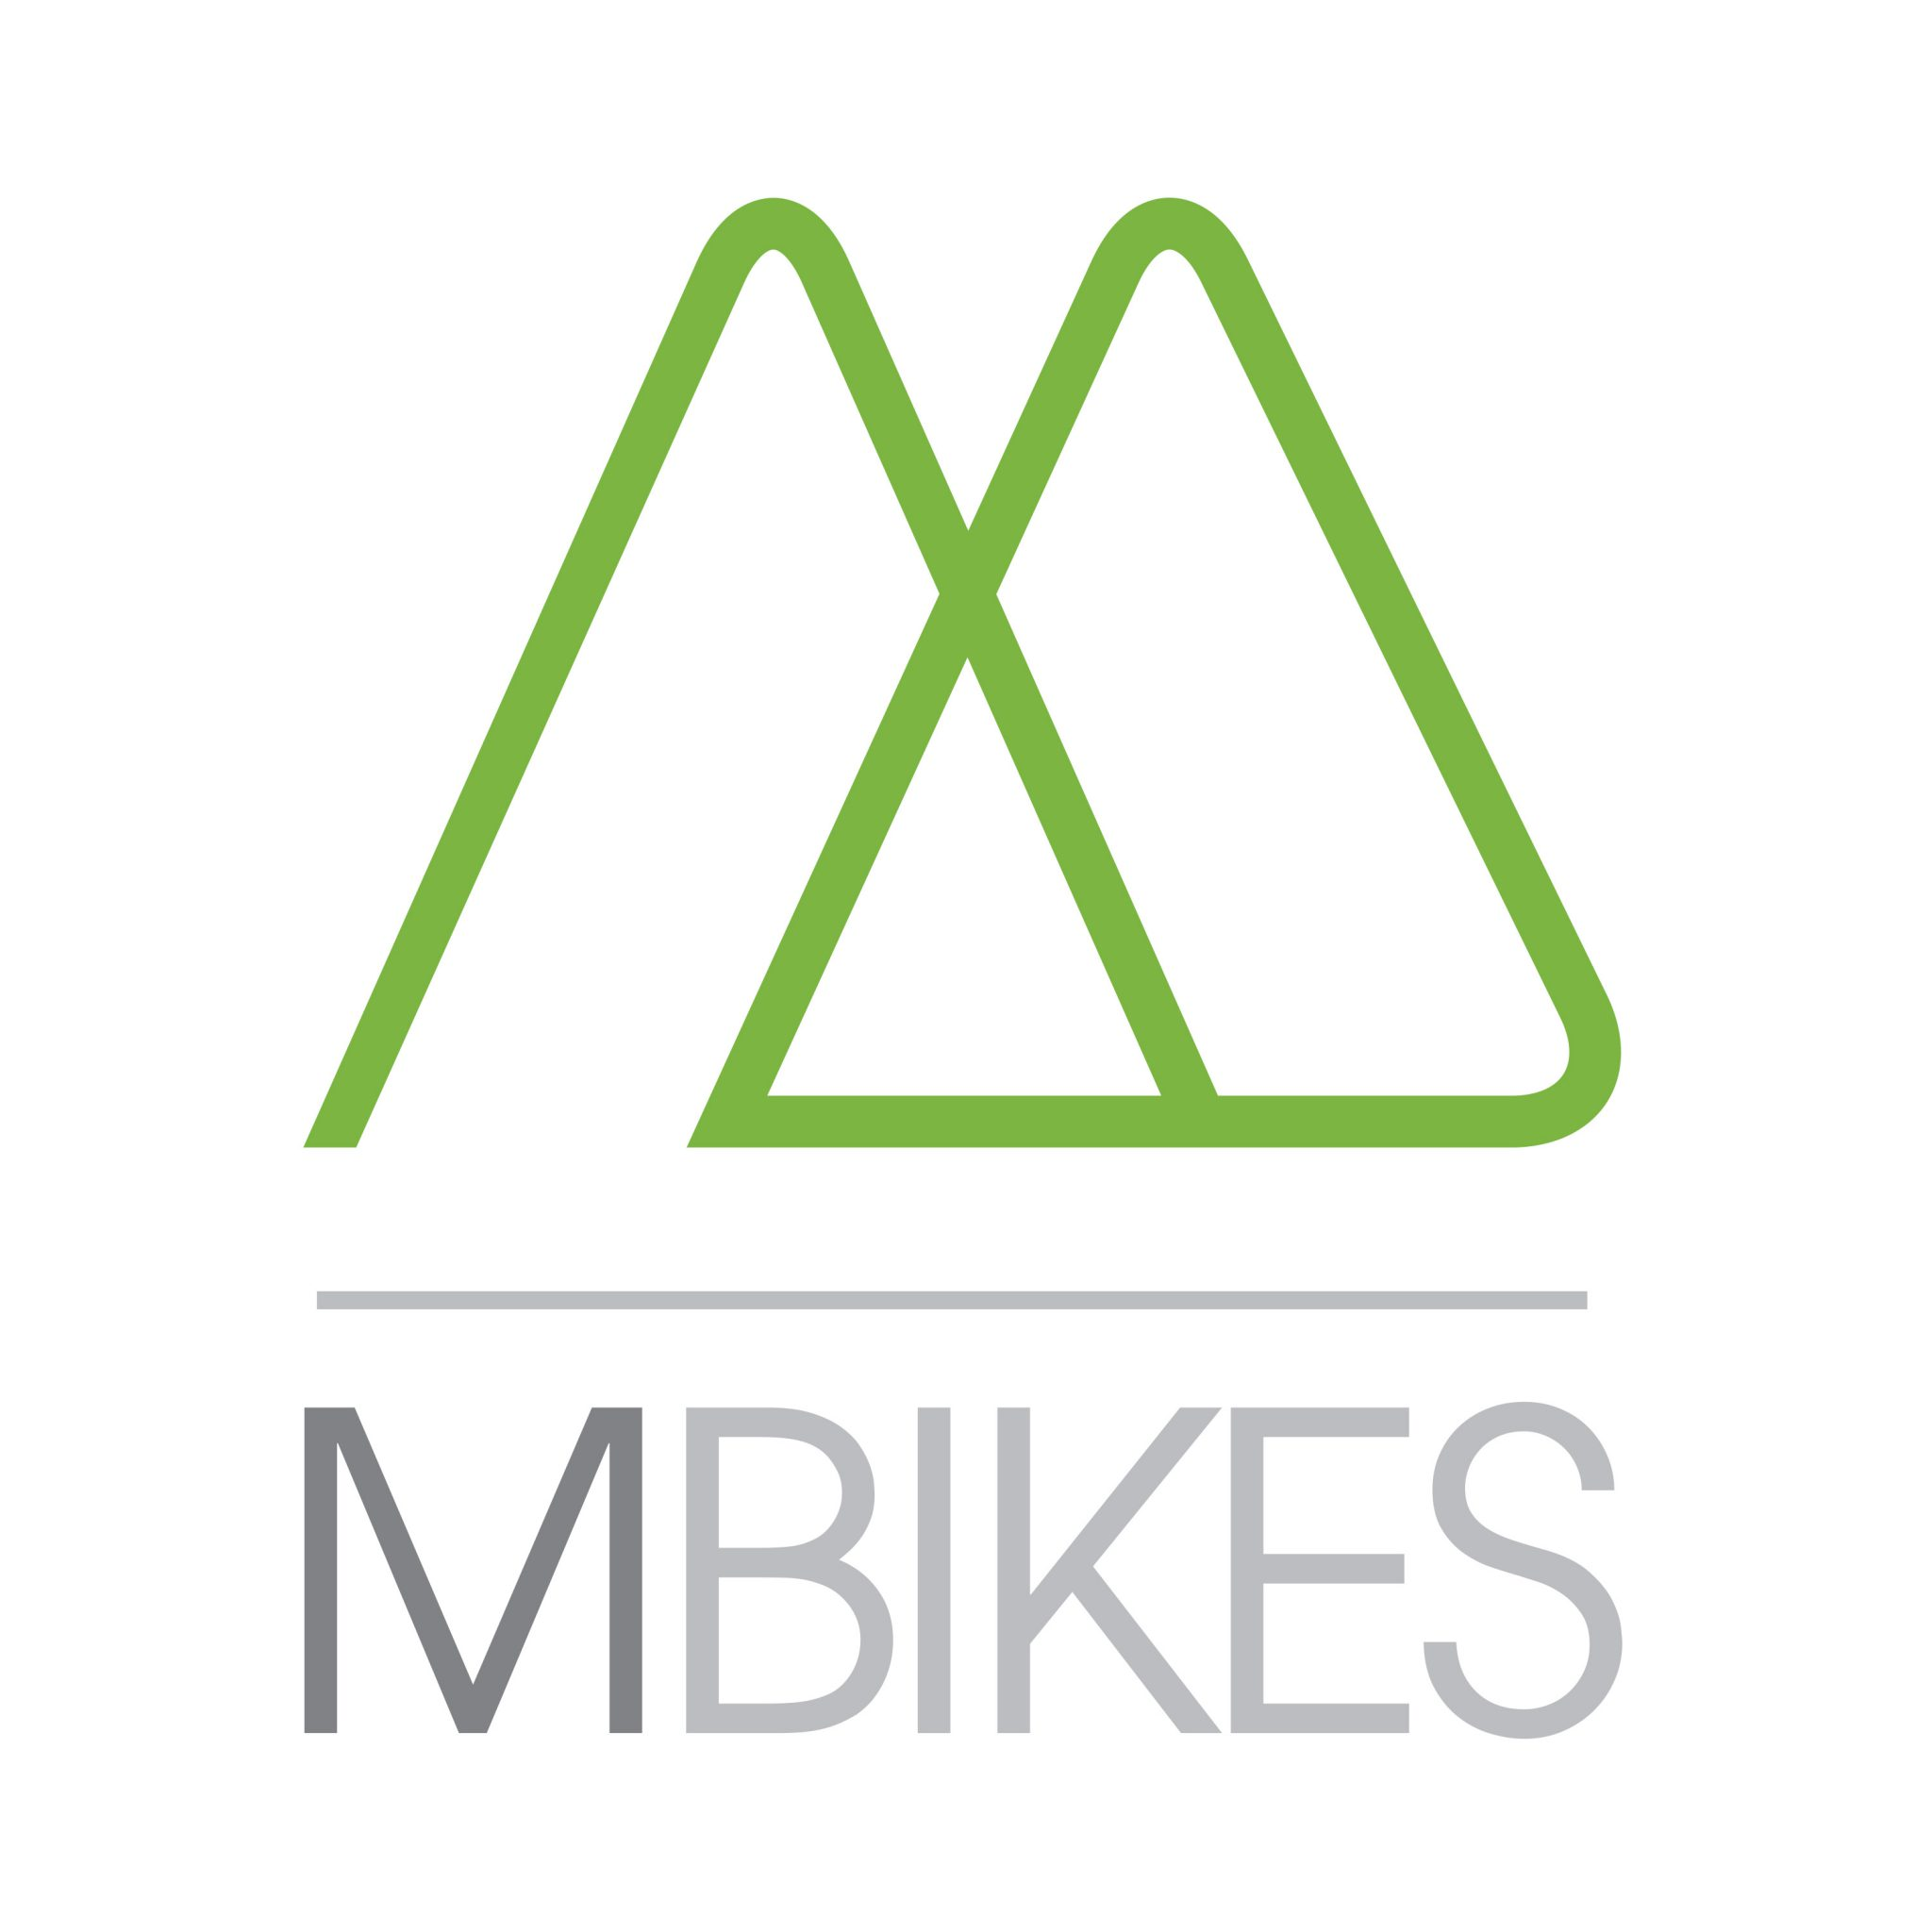 mBikes-green-stacked-highres